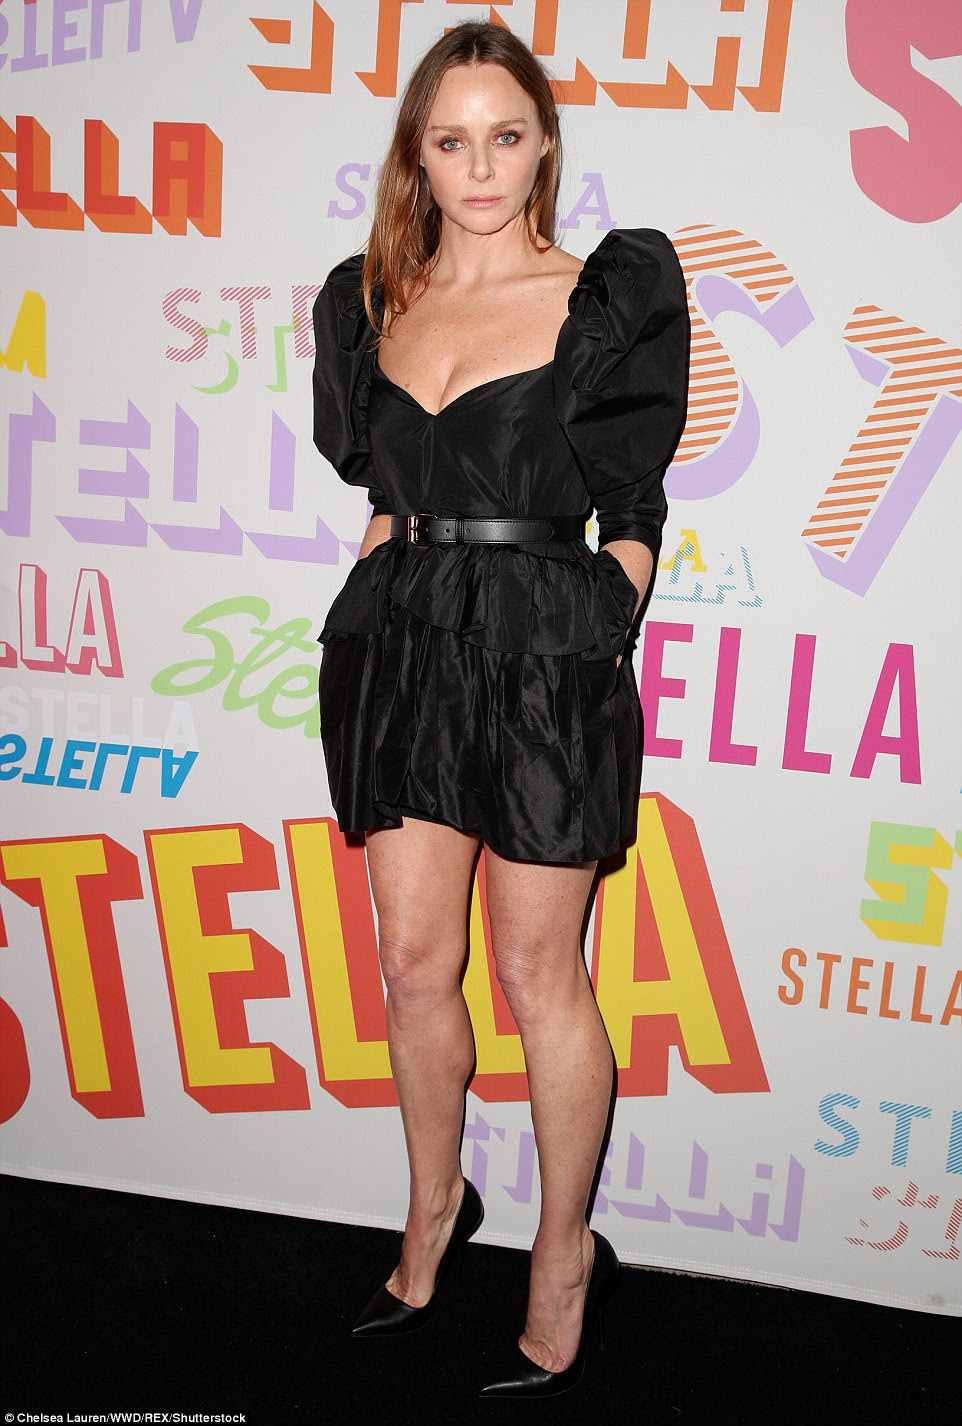 Woman of the hour: At her own event, Stella rocked a high-shouldered black mini-dress that played up her cleavage, cinching a belt round her enviably trim waistline